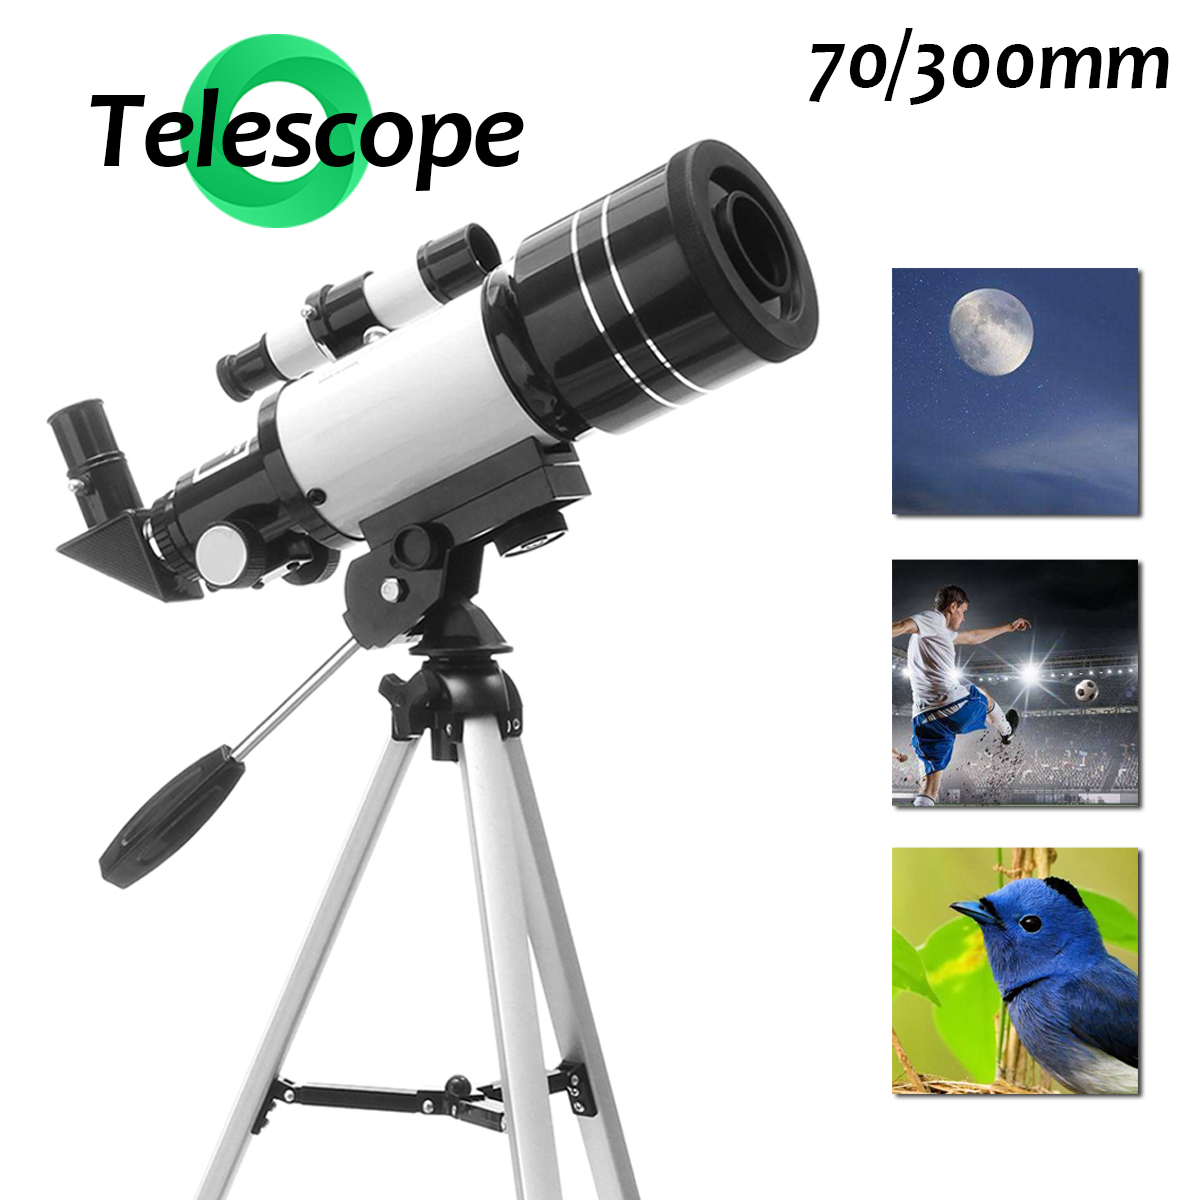 70/300mm Refractor Hunting Spotting Scope 150X 90 Degree Angle Astronomical Telescope Zoom Birdwatching Monocular Lens Tripods 40x60 hunting monocular telescope zoom optic lens binoculars spotting scope coating lenses dual focus optic lens